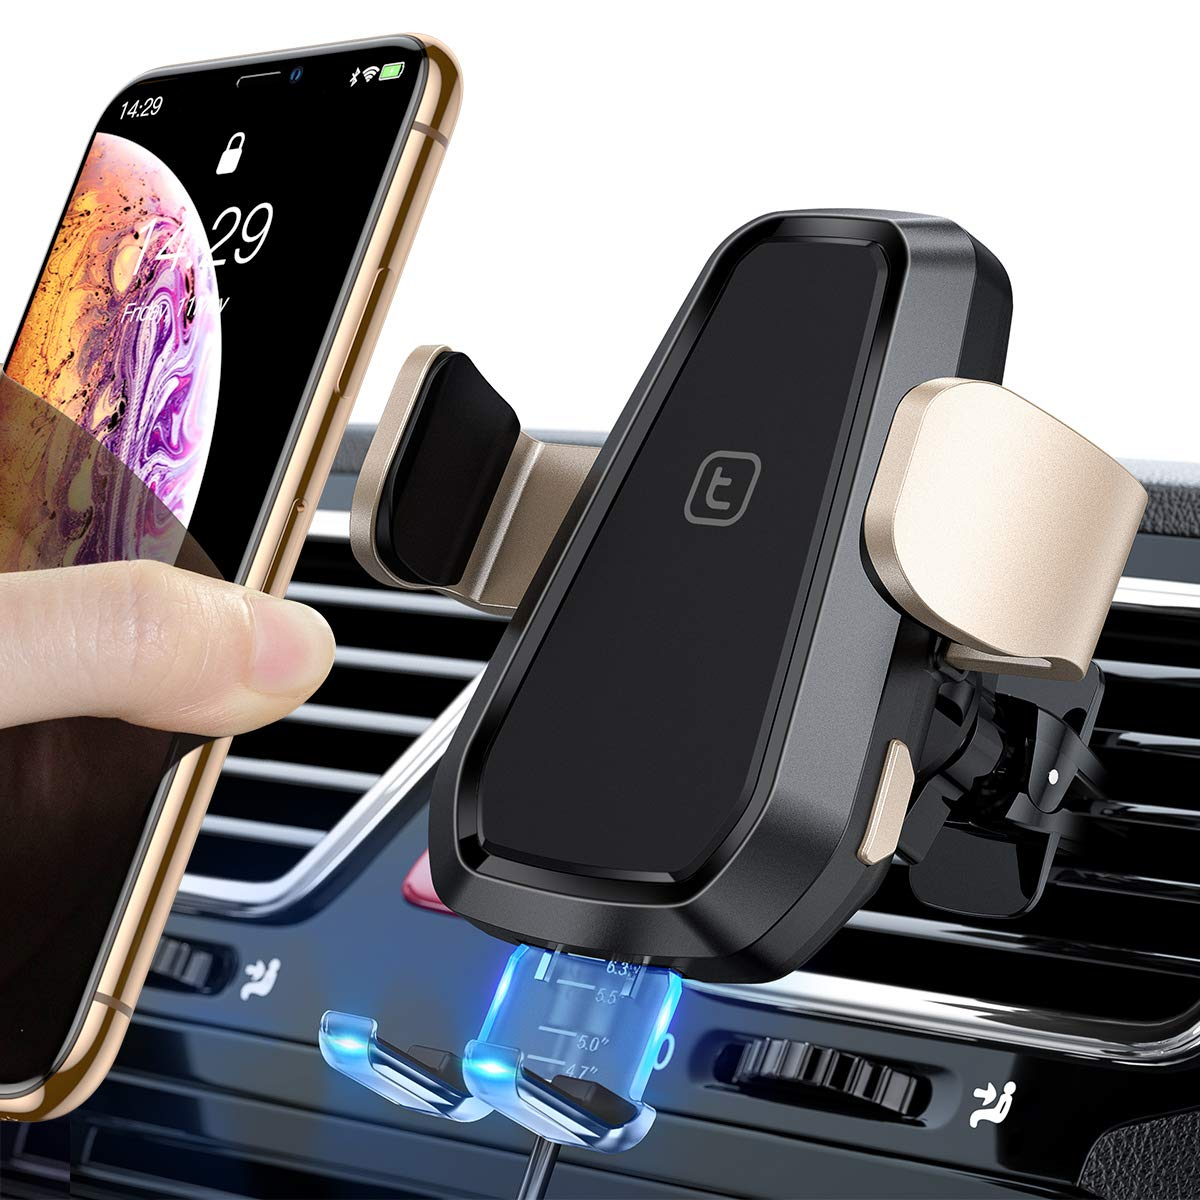 TORRAS Wireless Car Charger Mount, Auto Clamping Qi Fast Air Vent Phone Holder Compatible with iPhone 11/11 Pro/ 11 Pro Max/Xs Max/XR/Xs/8/8 Plus, Samsung Galaxy S10e/S10/S10 Plus/S9/S8+/Note10/10+ by TORRAS